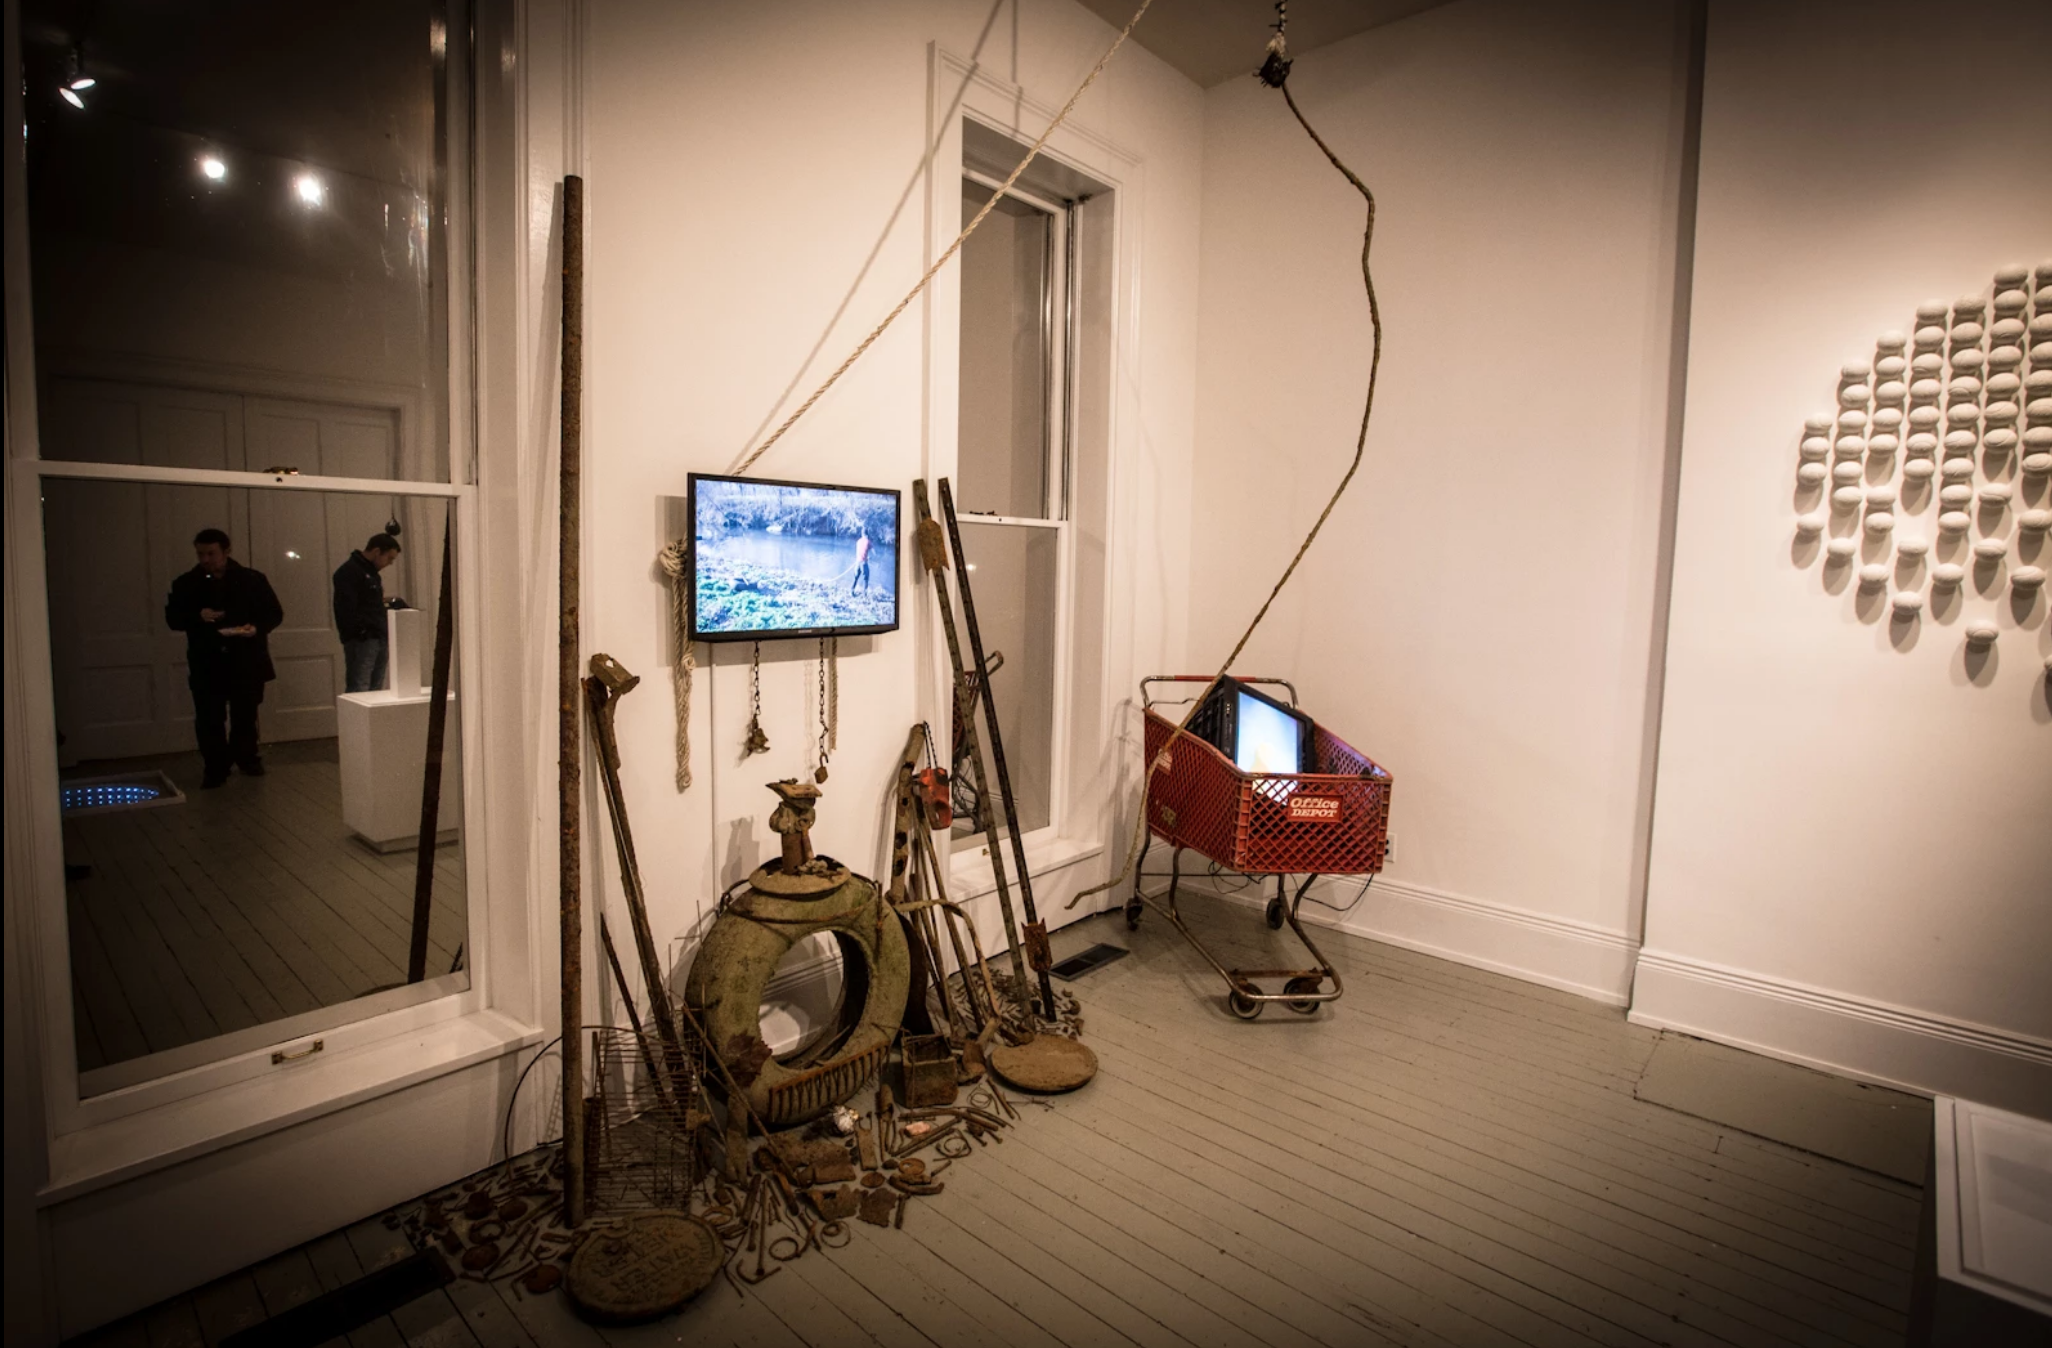 Installation view, two video monitors, at Crane House, Louisville, 2014